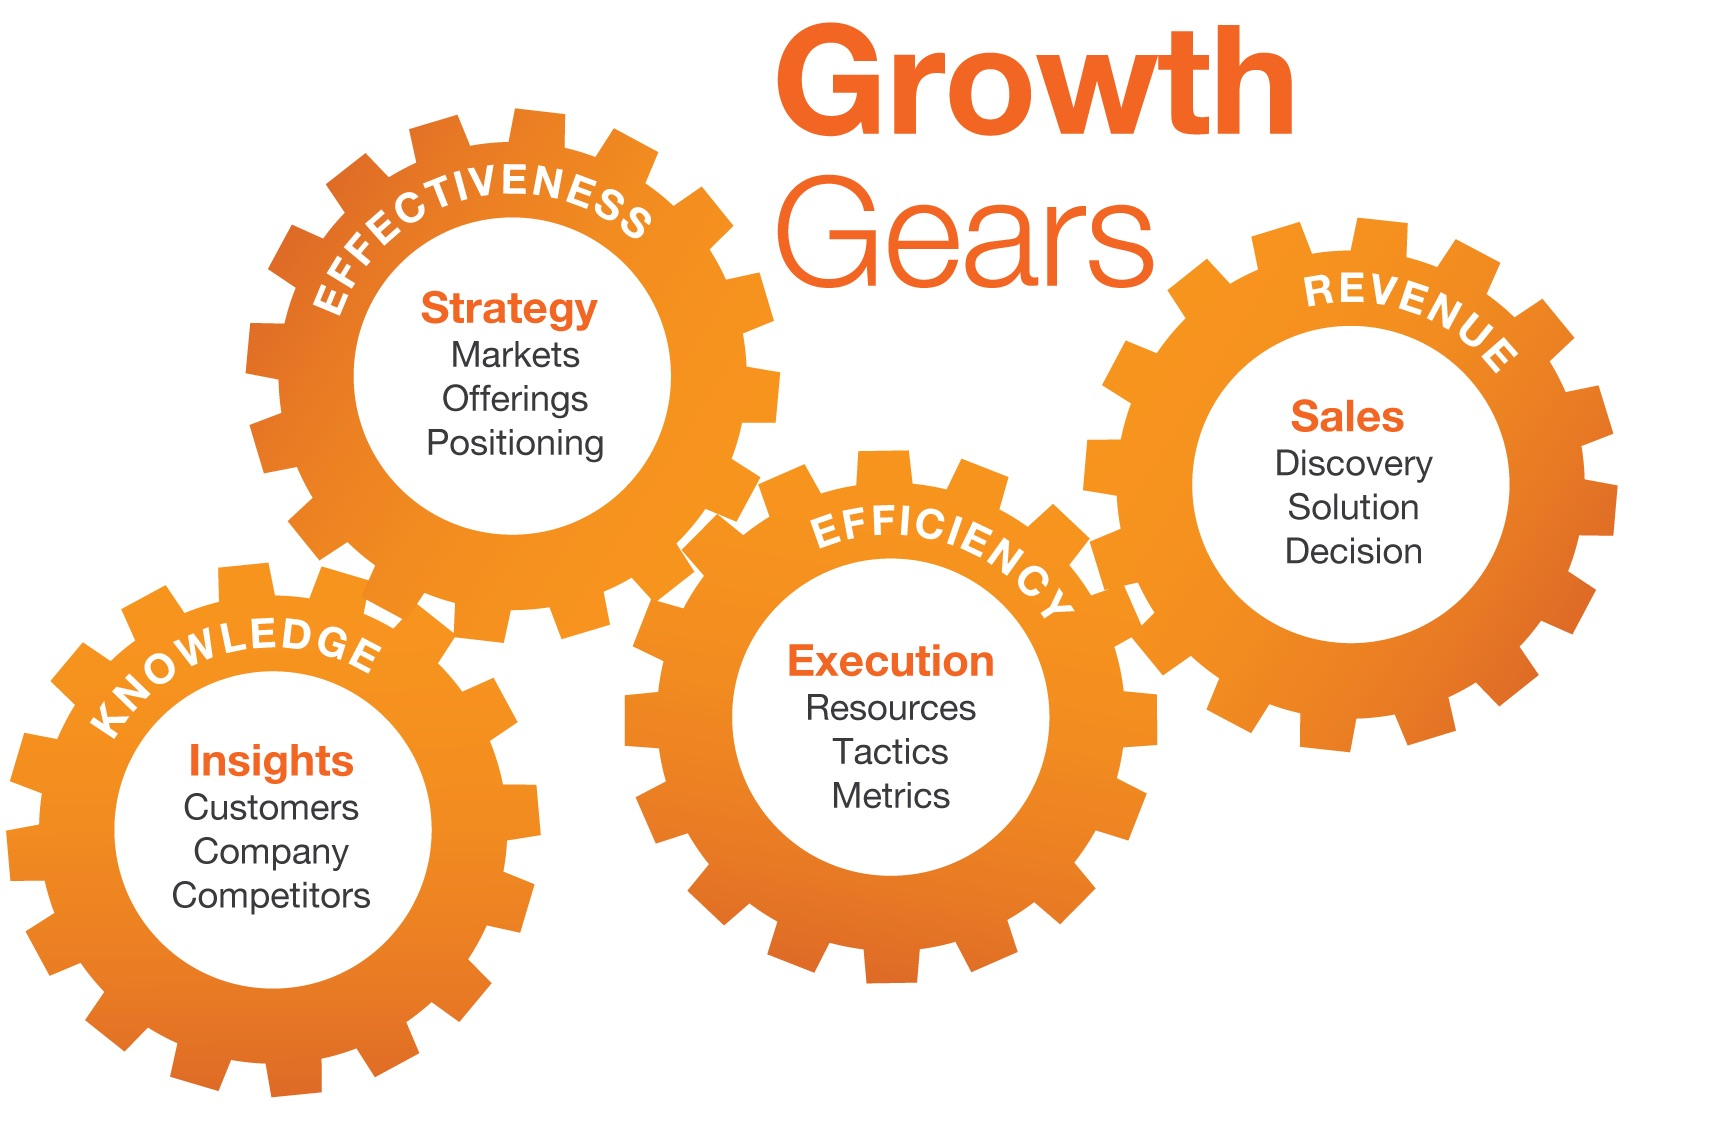 Growth-Gears-Graphic-4-cogs-sales.jpg